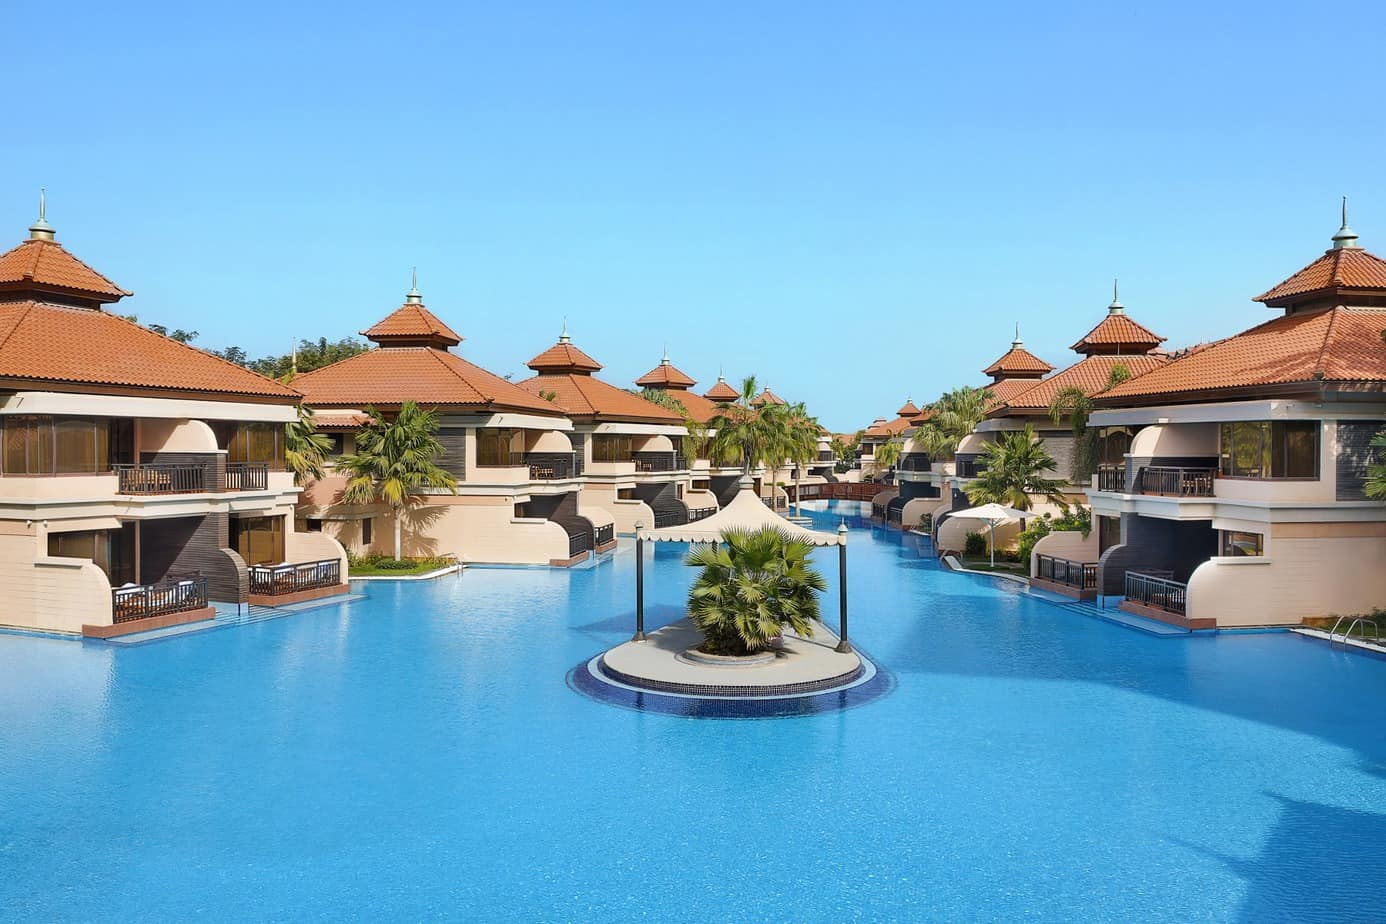 Anantara-The-Palm-Dubai-Resort-Exterior-shot-Lagoons